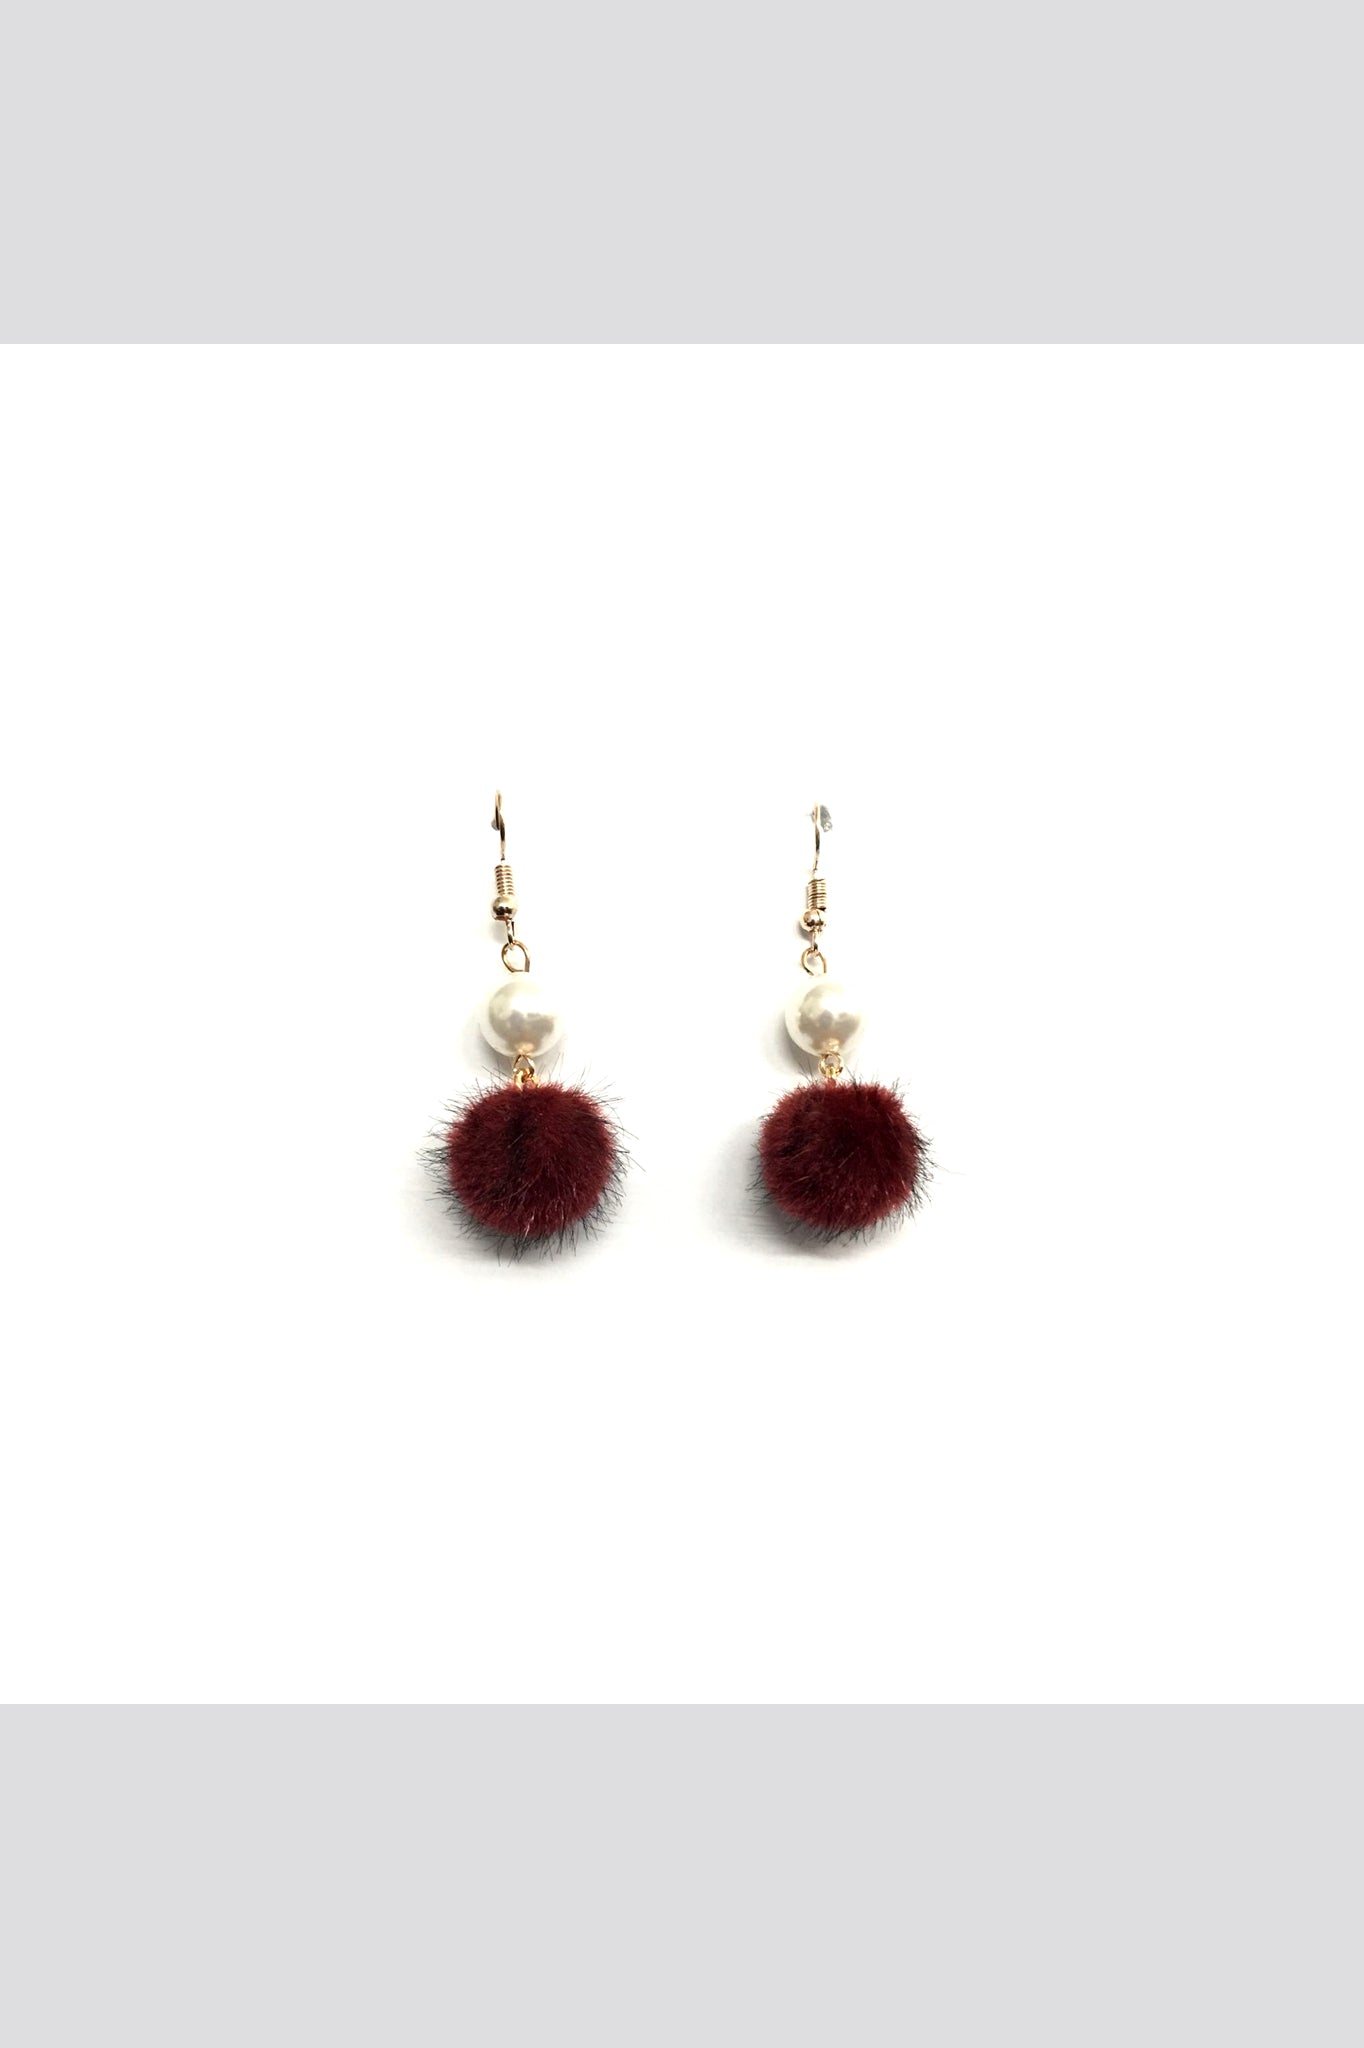 Earring-Design-47